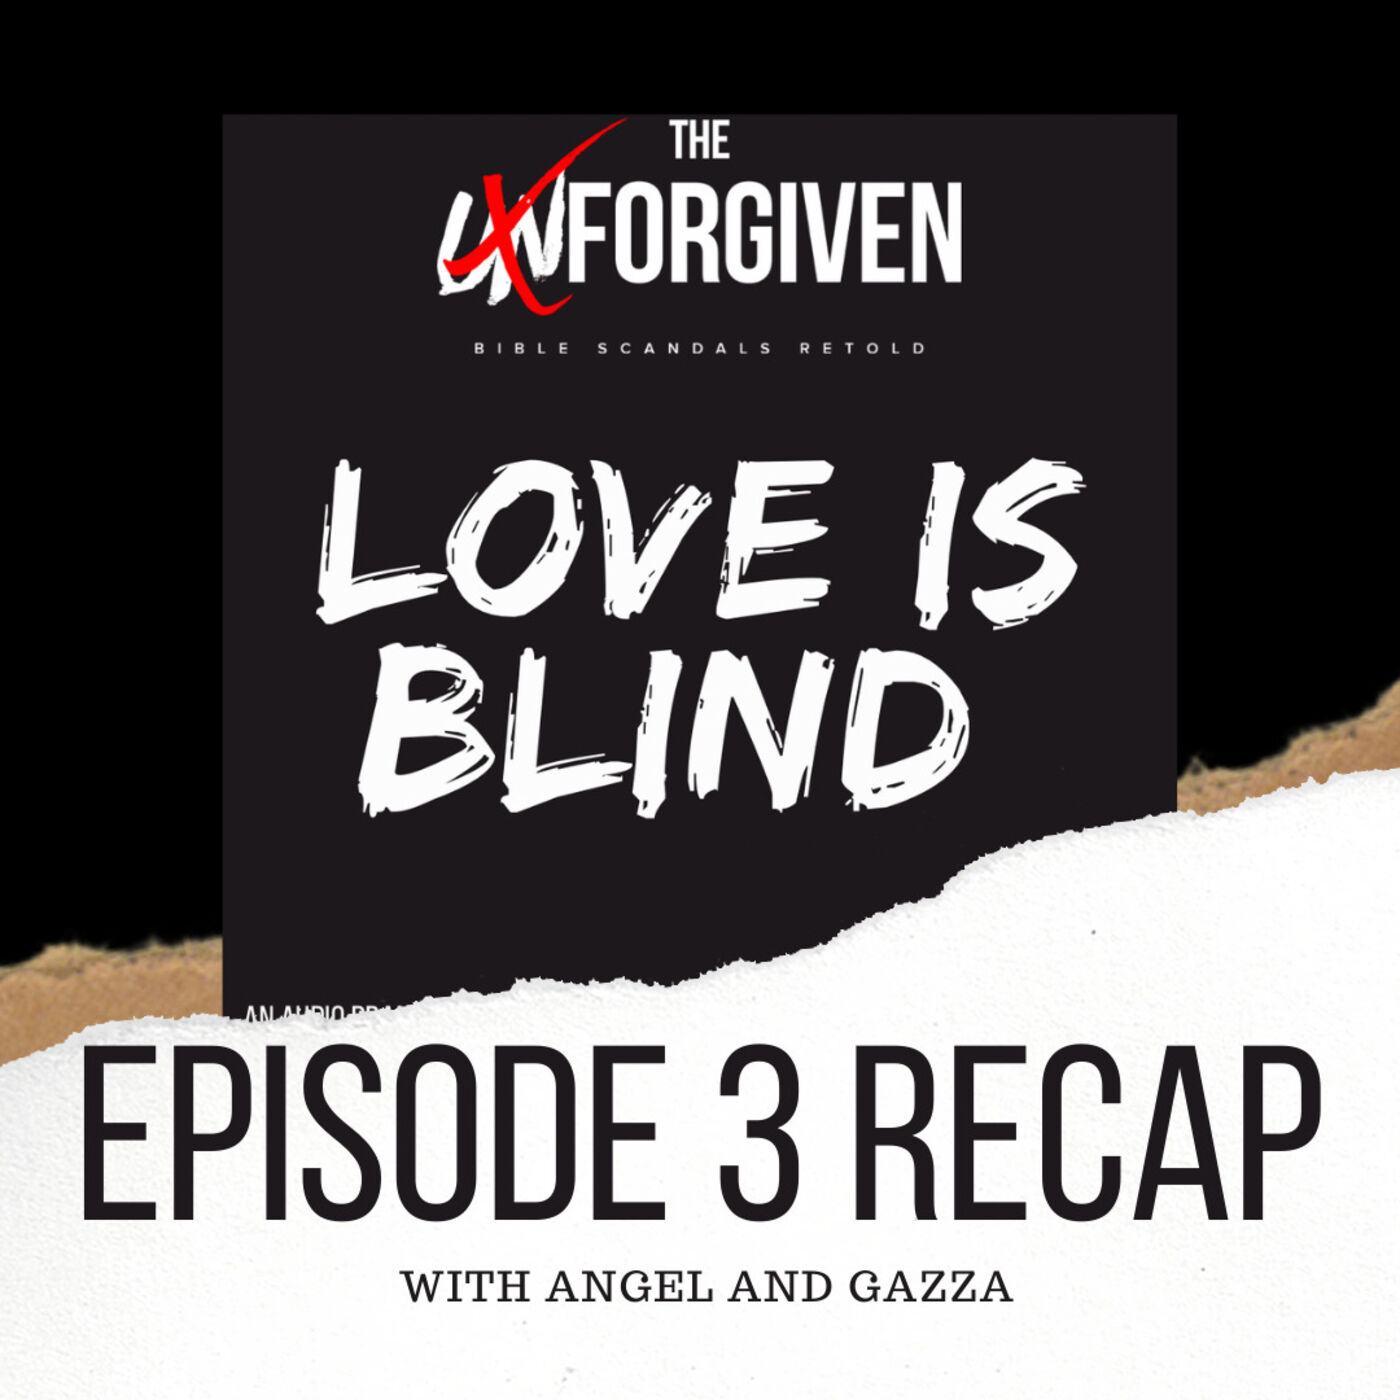 Episode 3 Recap with Angel and Gazza